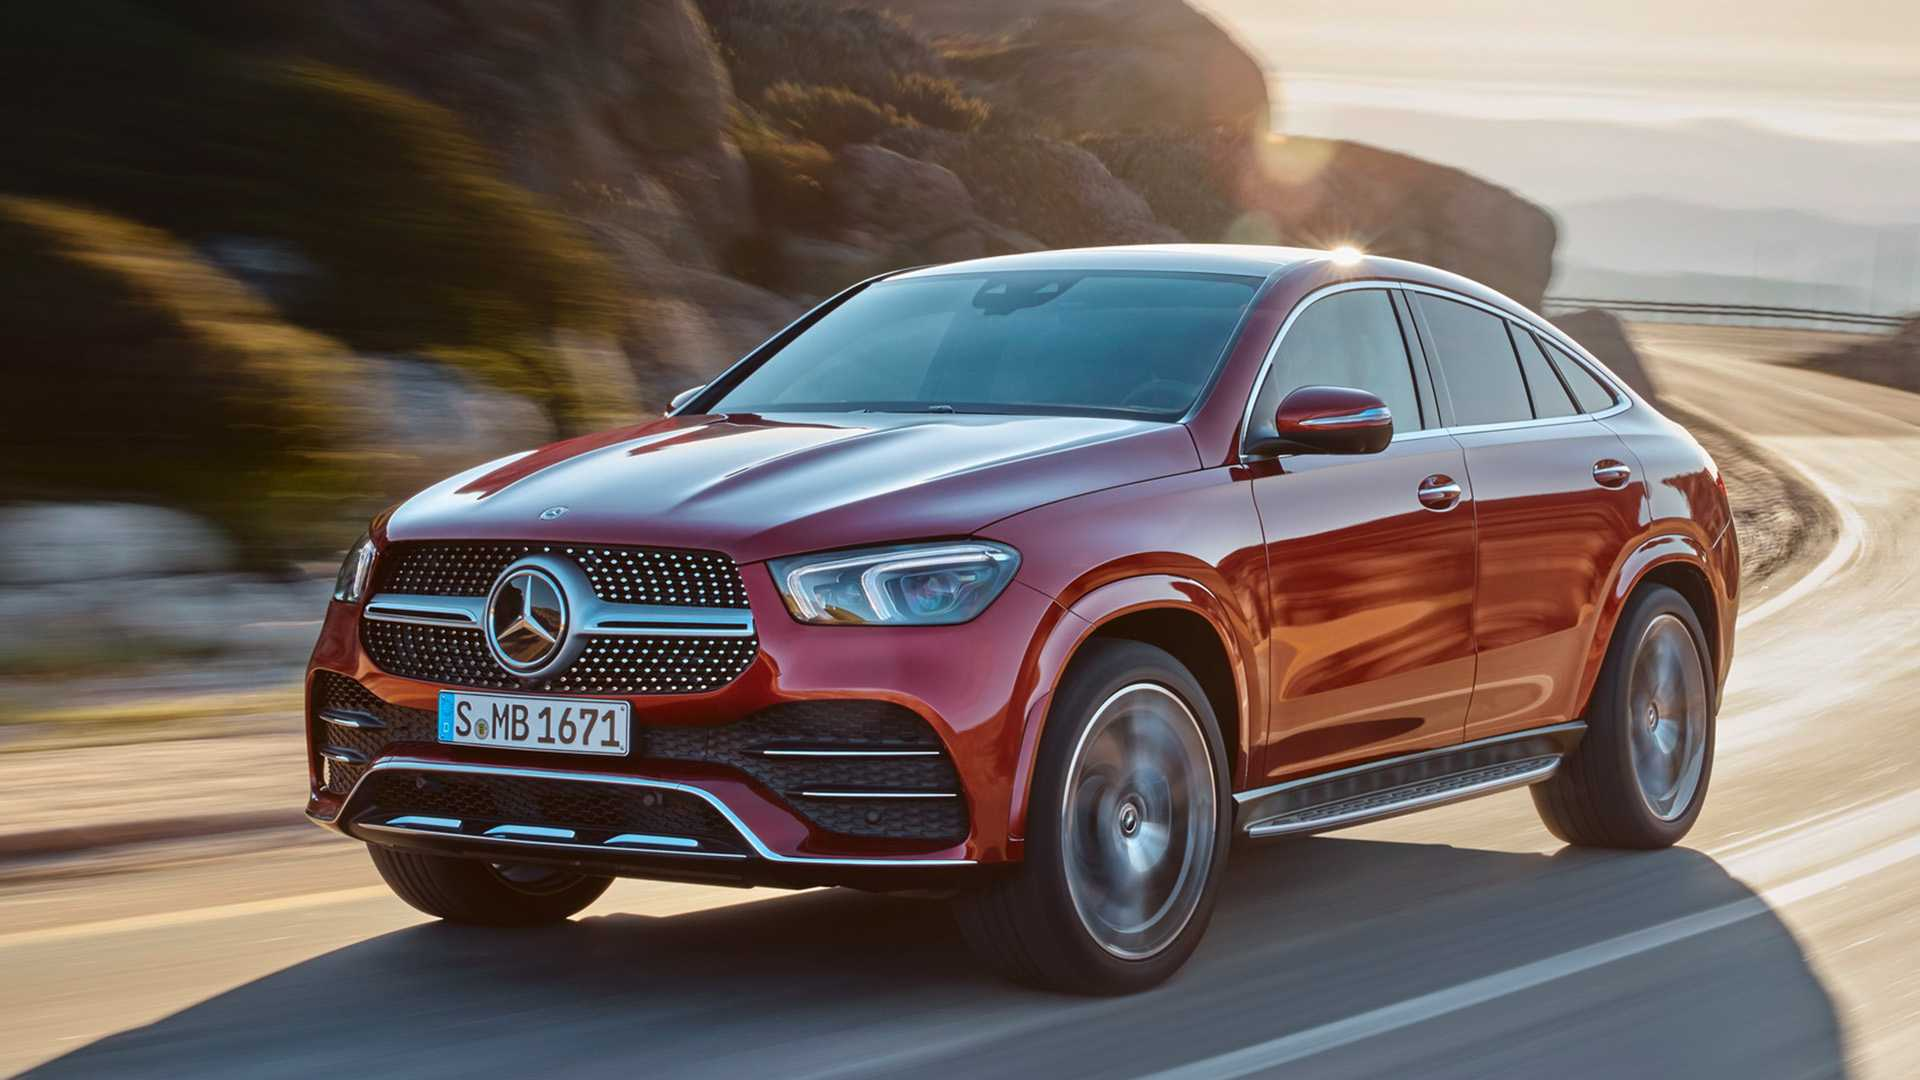 2021 Mercedes GLE Coupe, AMG GLE 53 Debut Updated Design ...